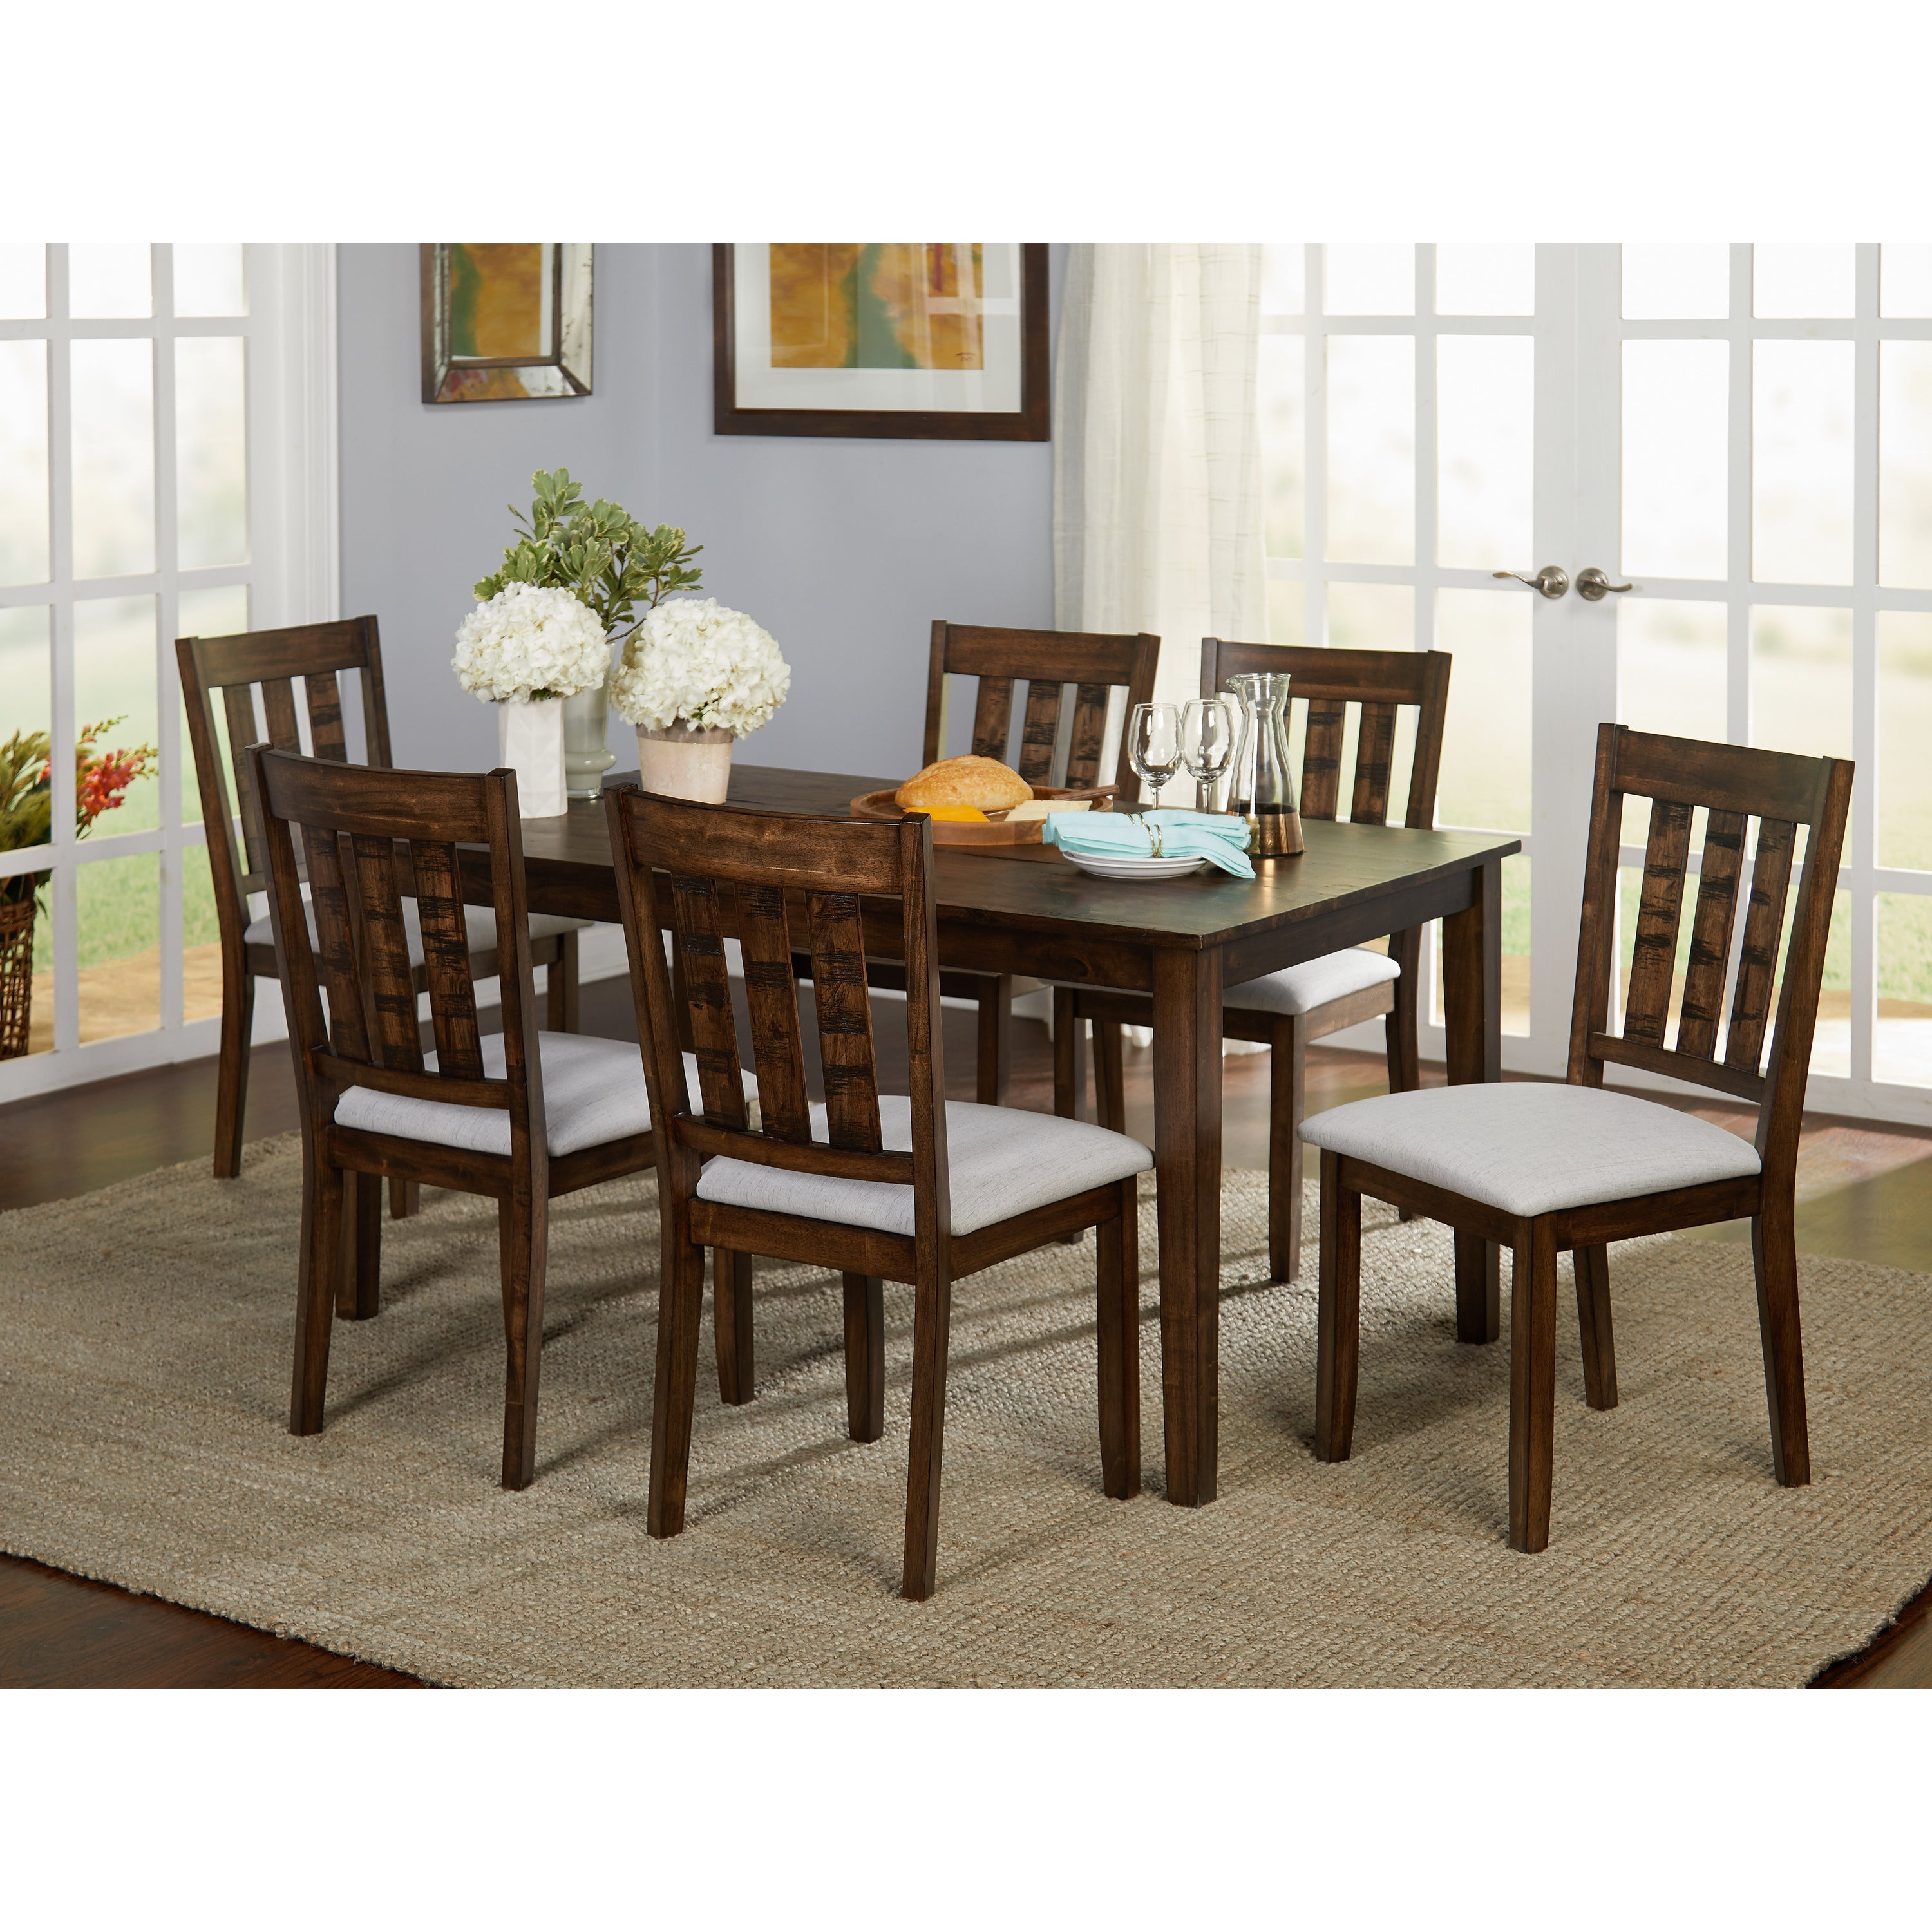 at for table kitchen cheap livings dining big design sets from room great living lots set